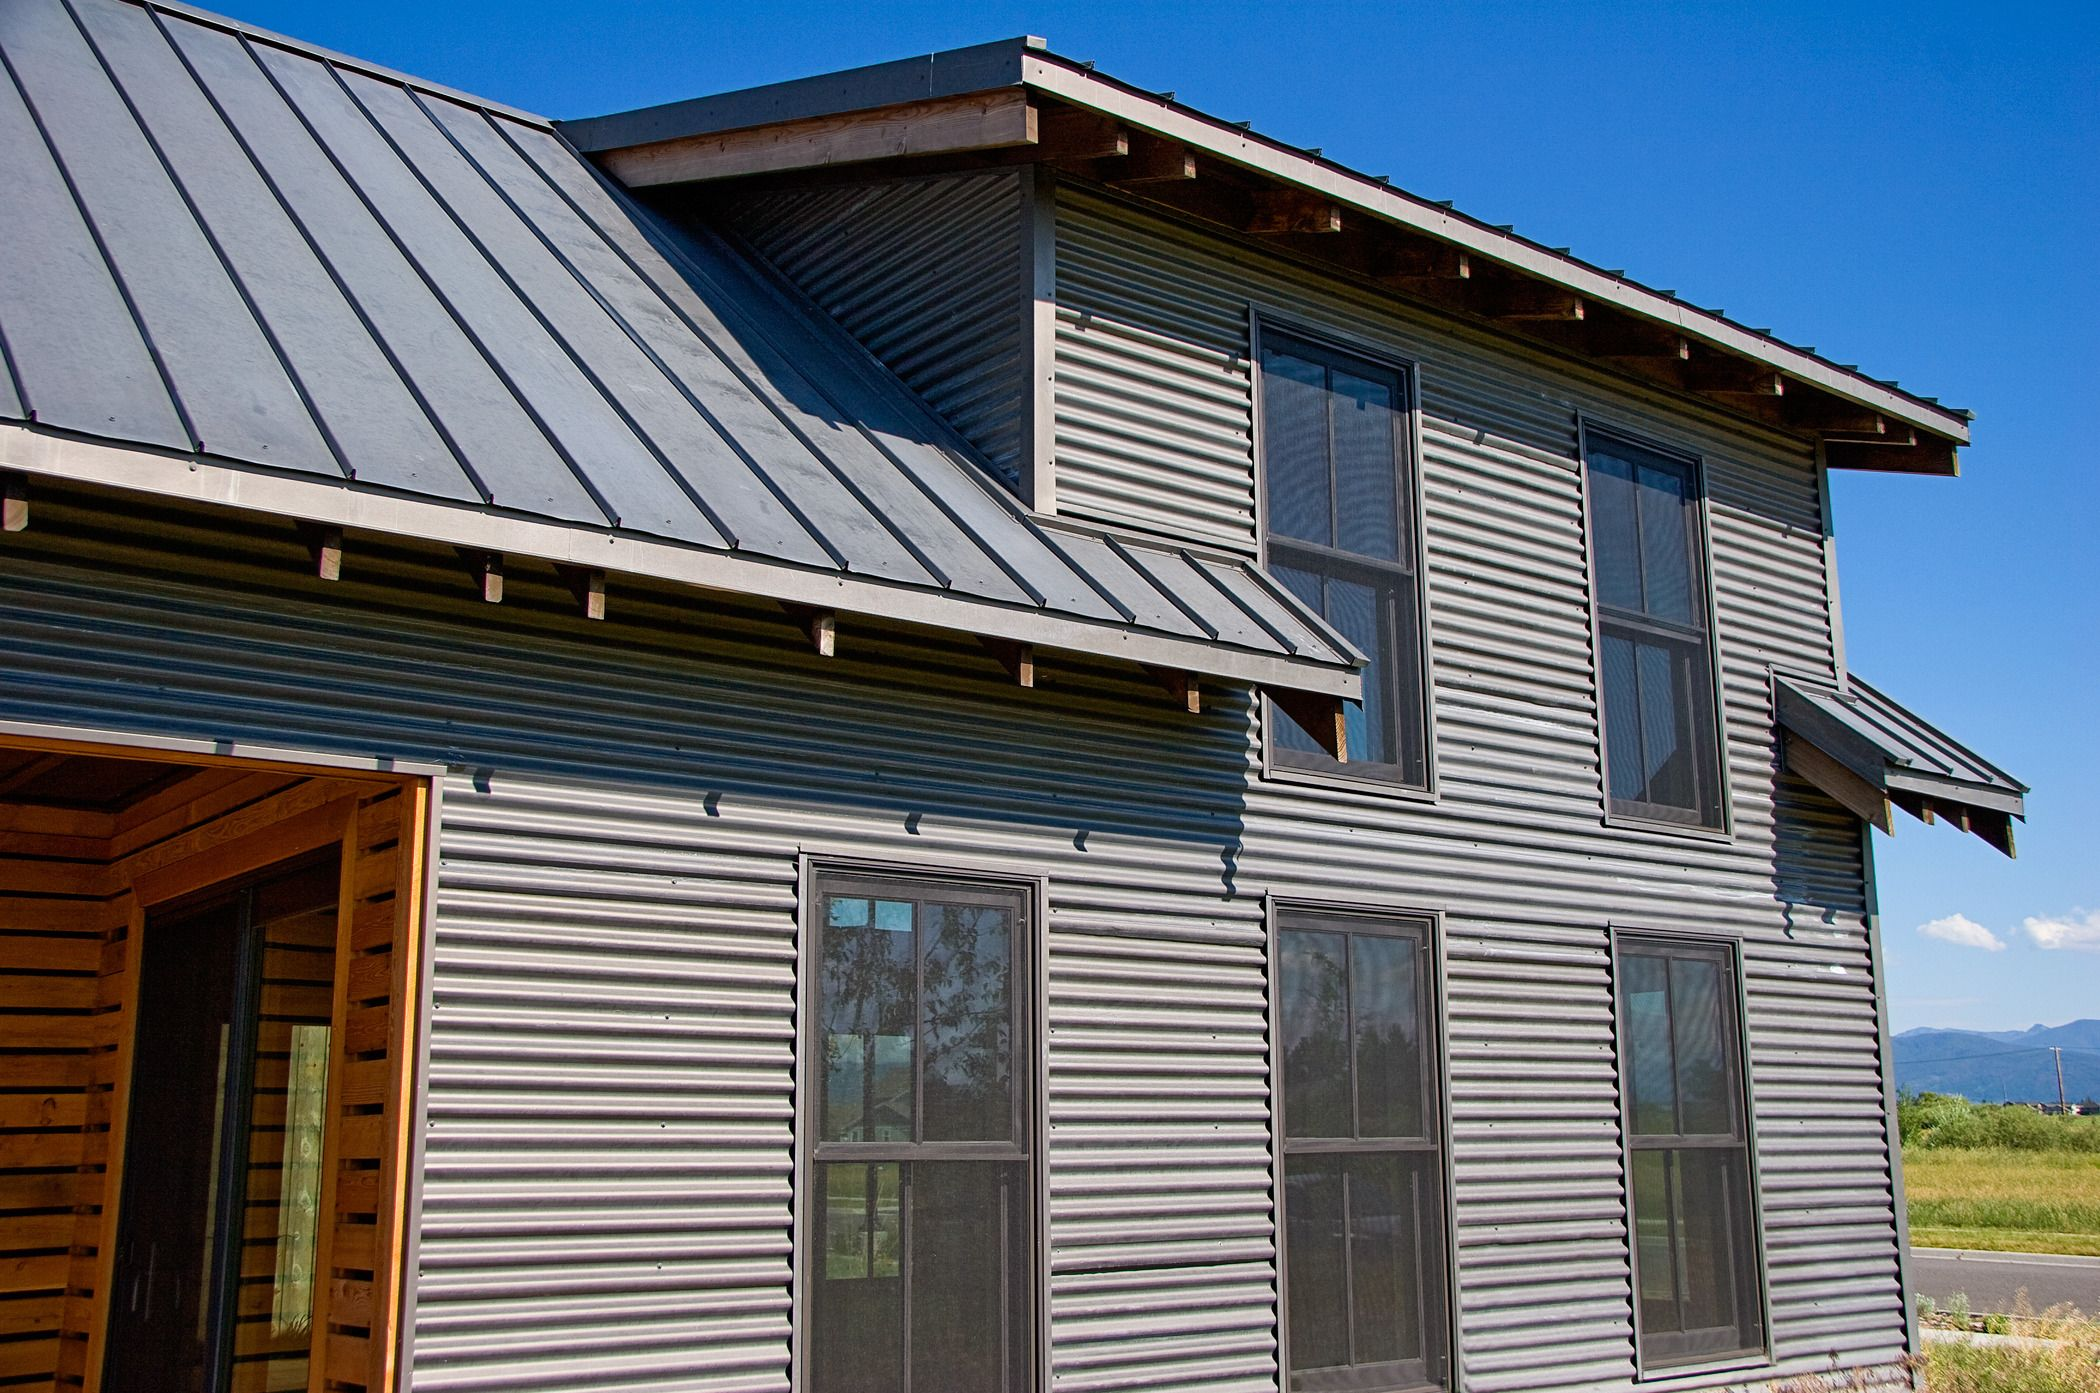 Metal Roofing And Siding Project Photos Corrugated Metal Siding Steel Siding Metal Siding House